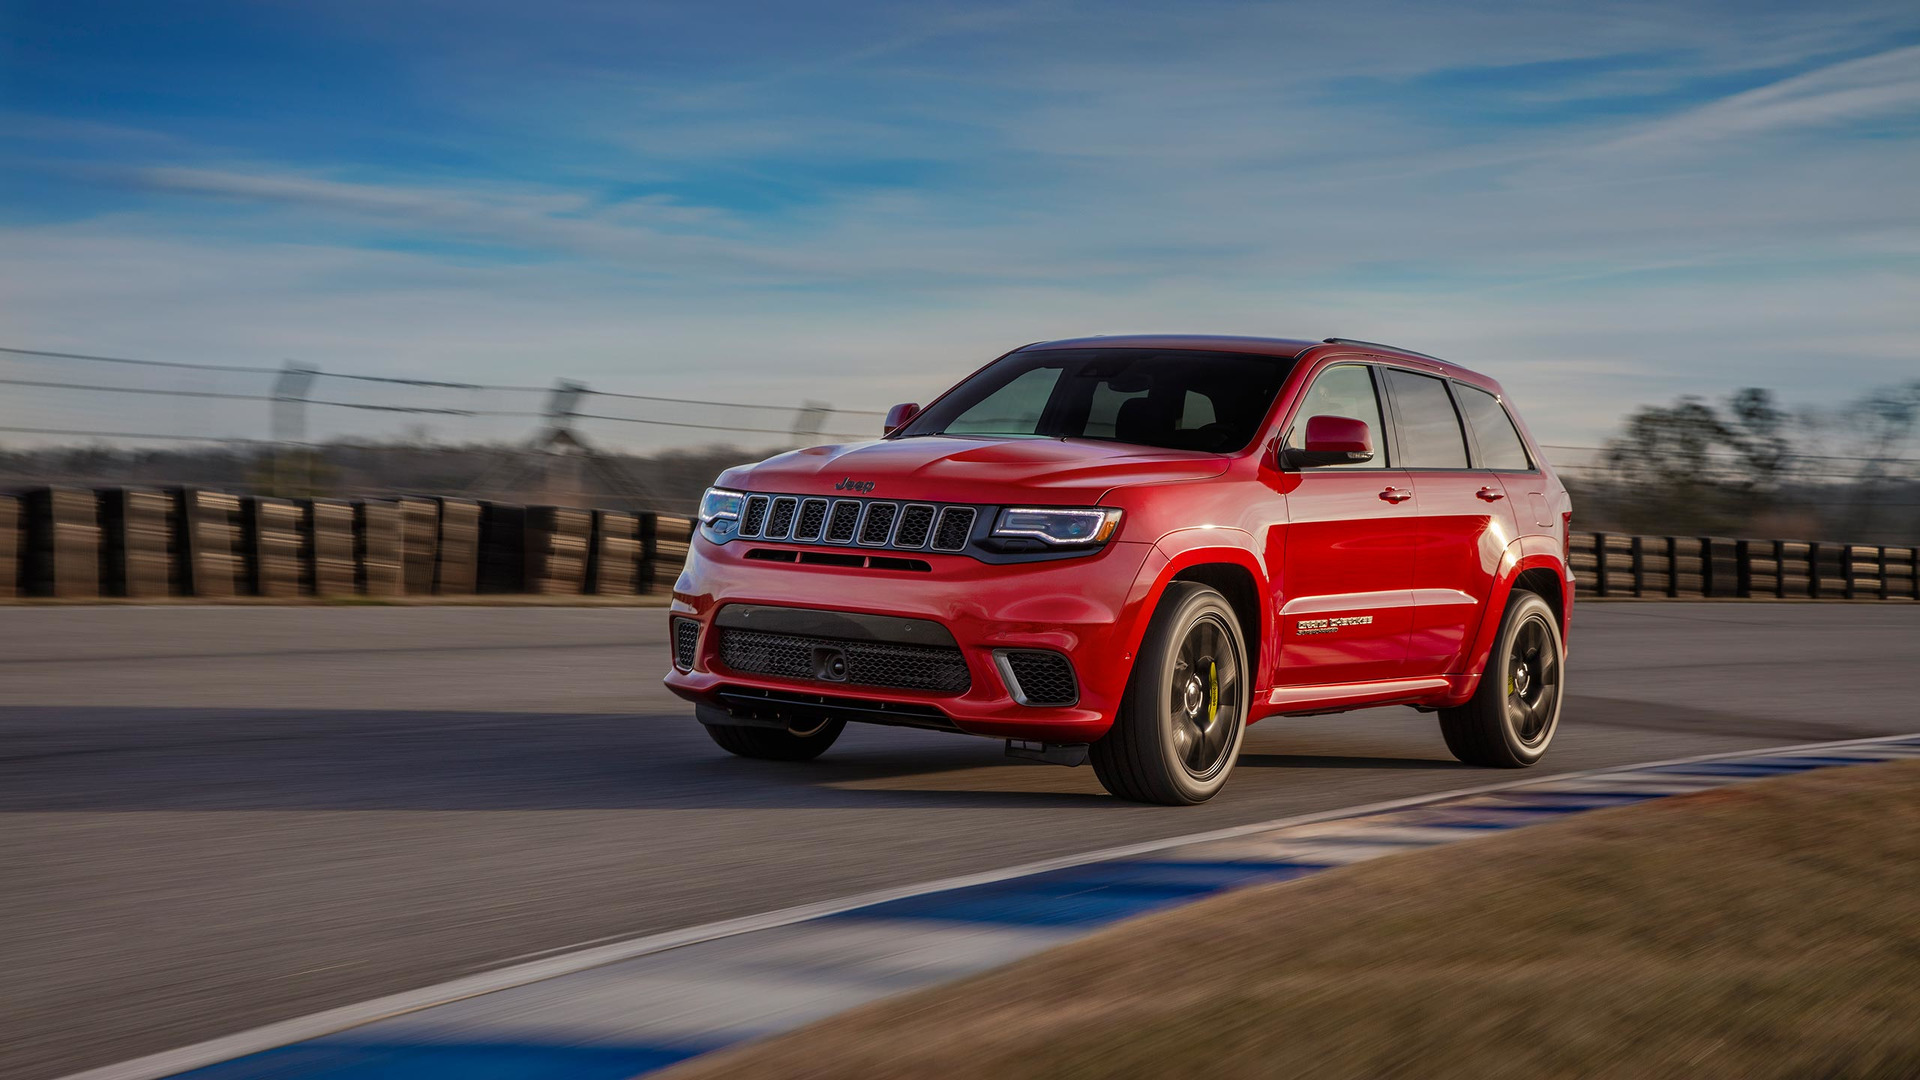 Track Hawk Grand Cherokee >> 2018 Jeep Grand Cherokee Trackhawk – 707 hp SUV Paul Tan - Image 642214